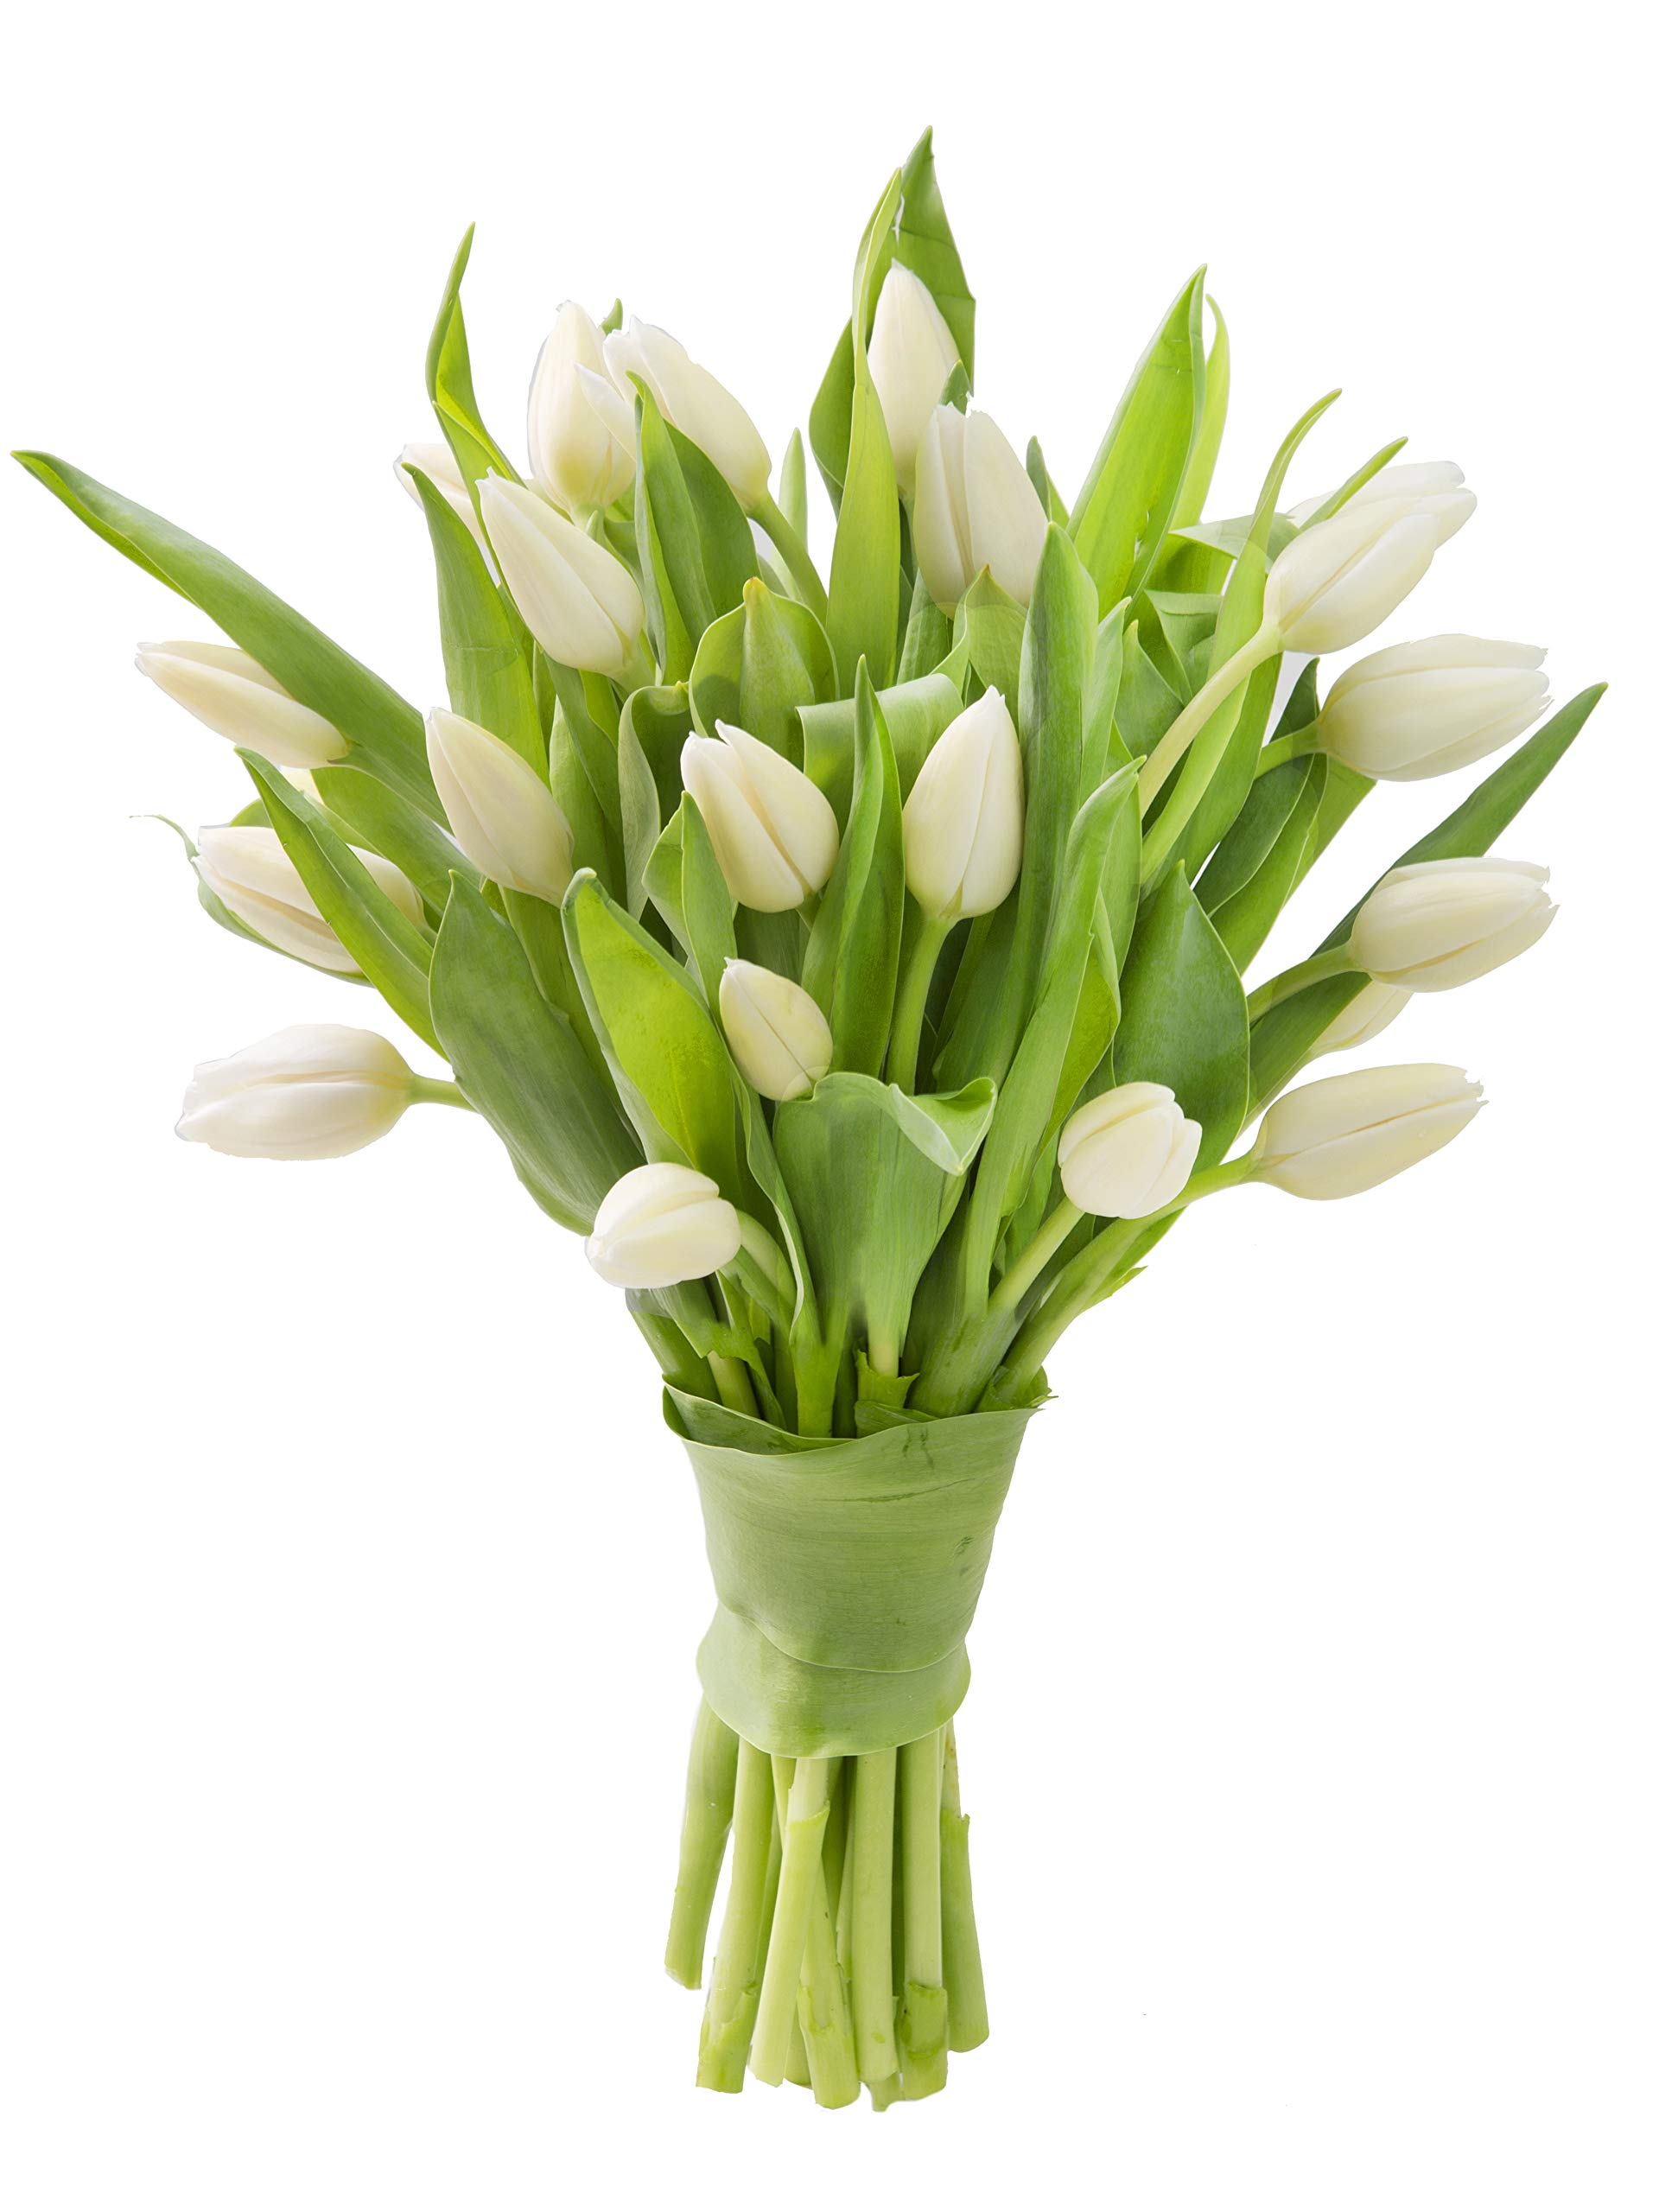 Blooms2Door 20 White Tulips (Farm-Fresh Flowers, Cut-to-Order, and Homegrown in the USA)